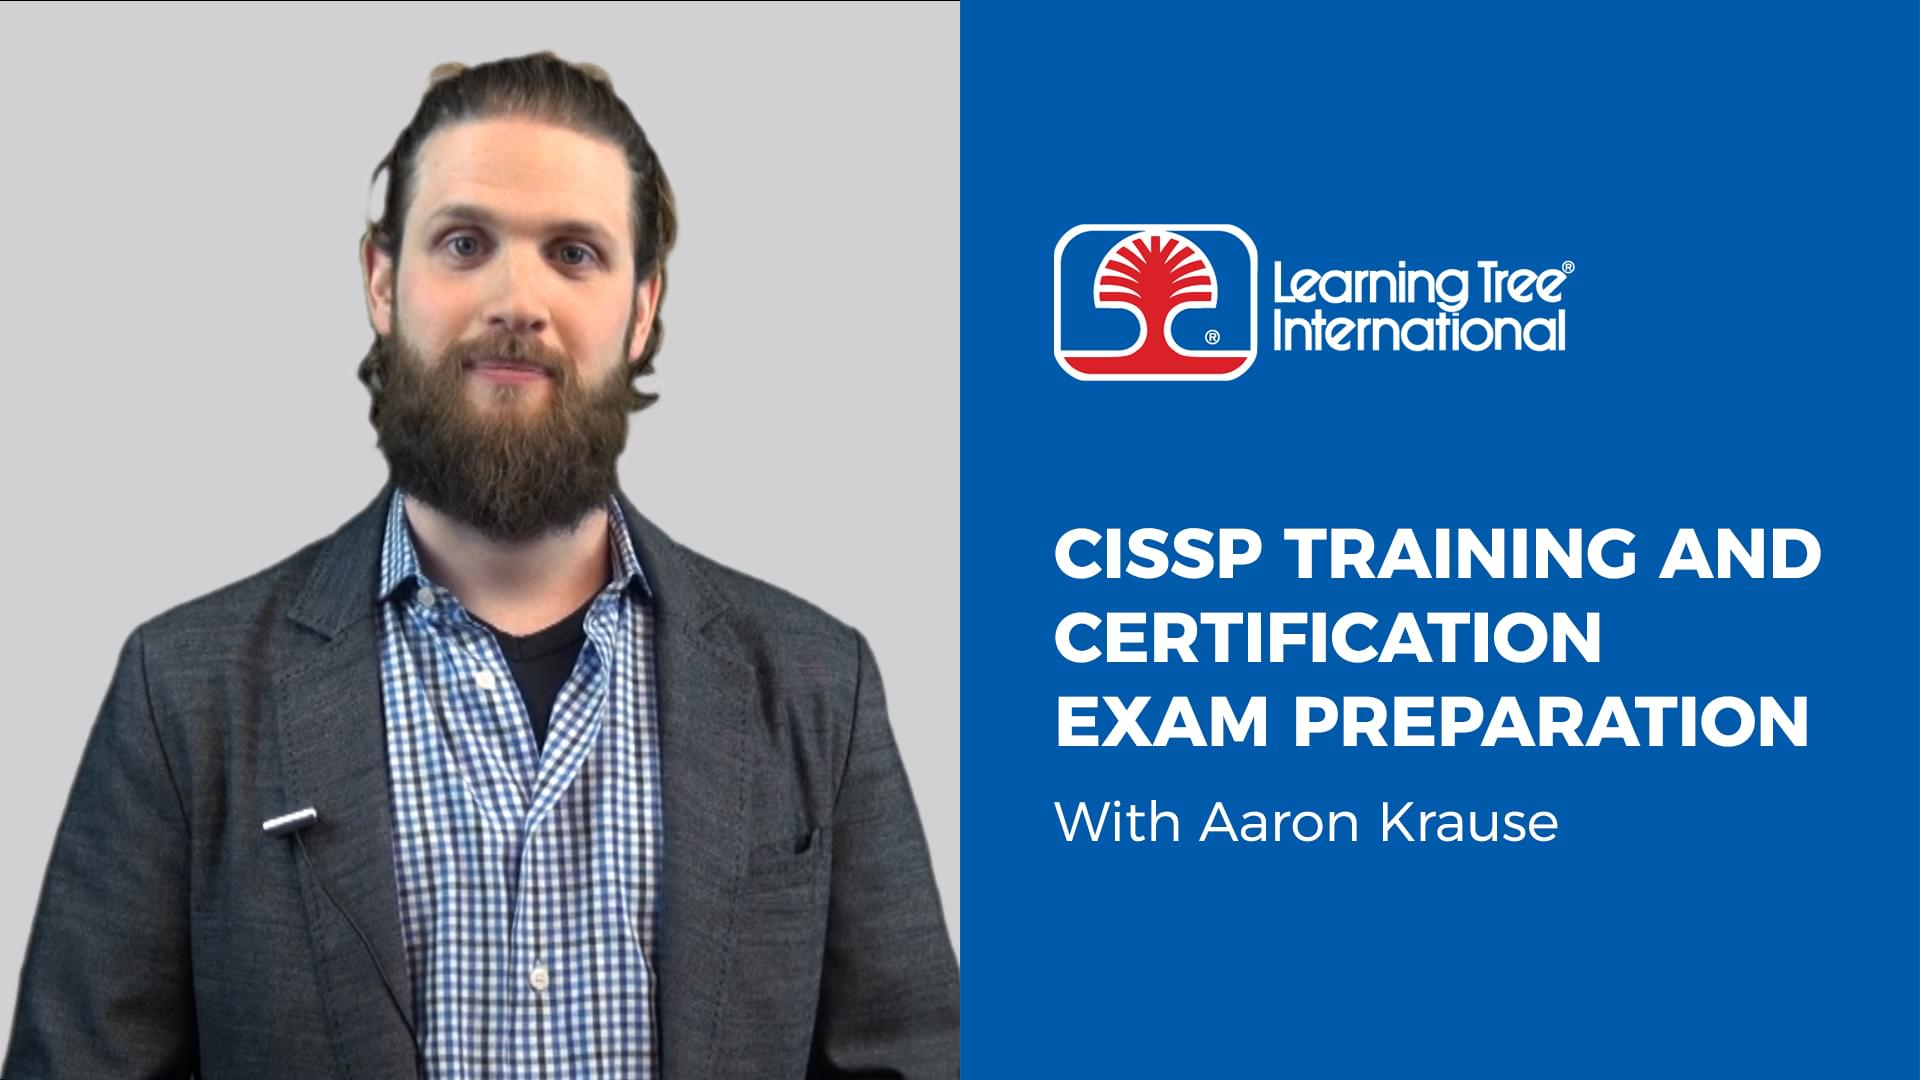 CISSP Certification | CISSP Training | Learning Tree